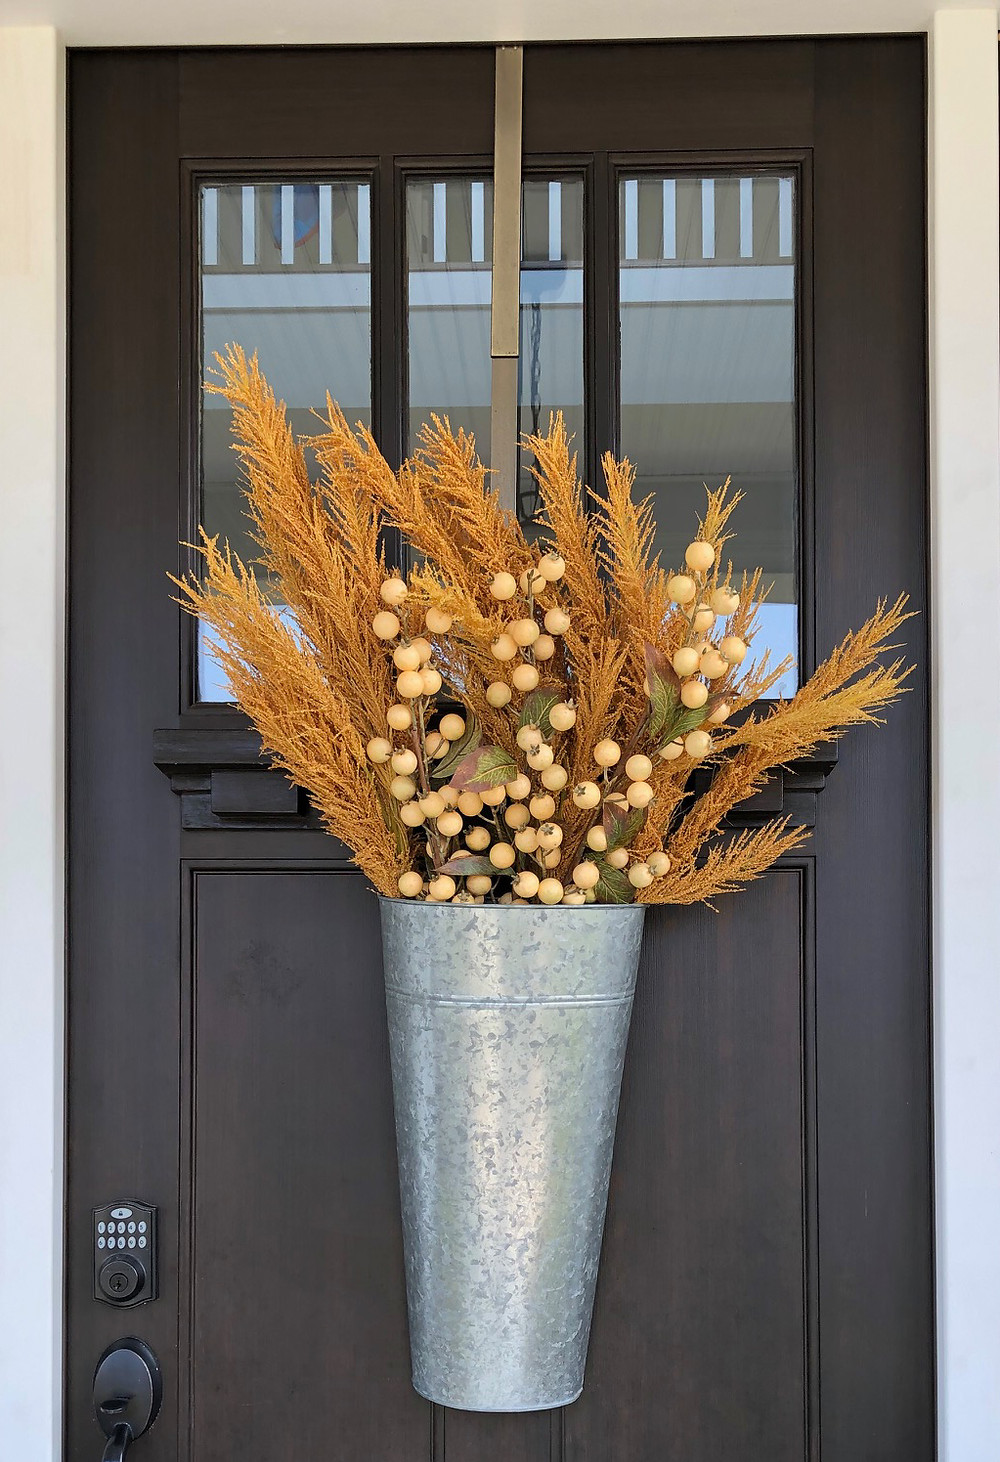 Jennifer Janeway Designs - Ornamental grasses and mini pumpkins fill this galvanized wall pocket